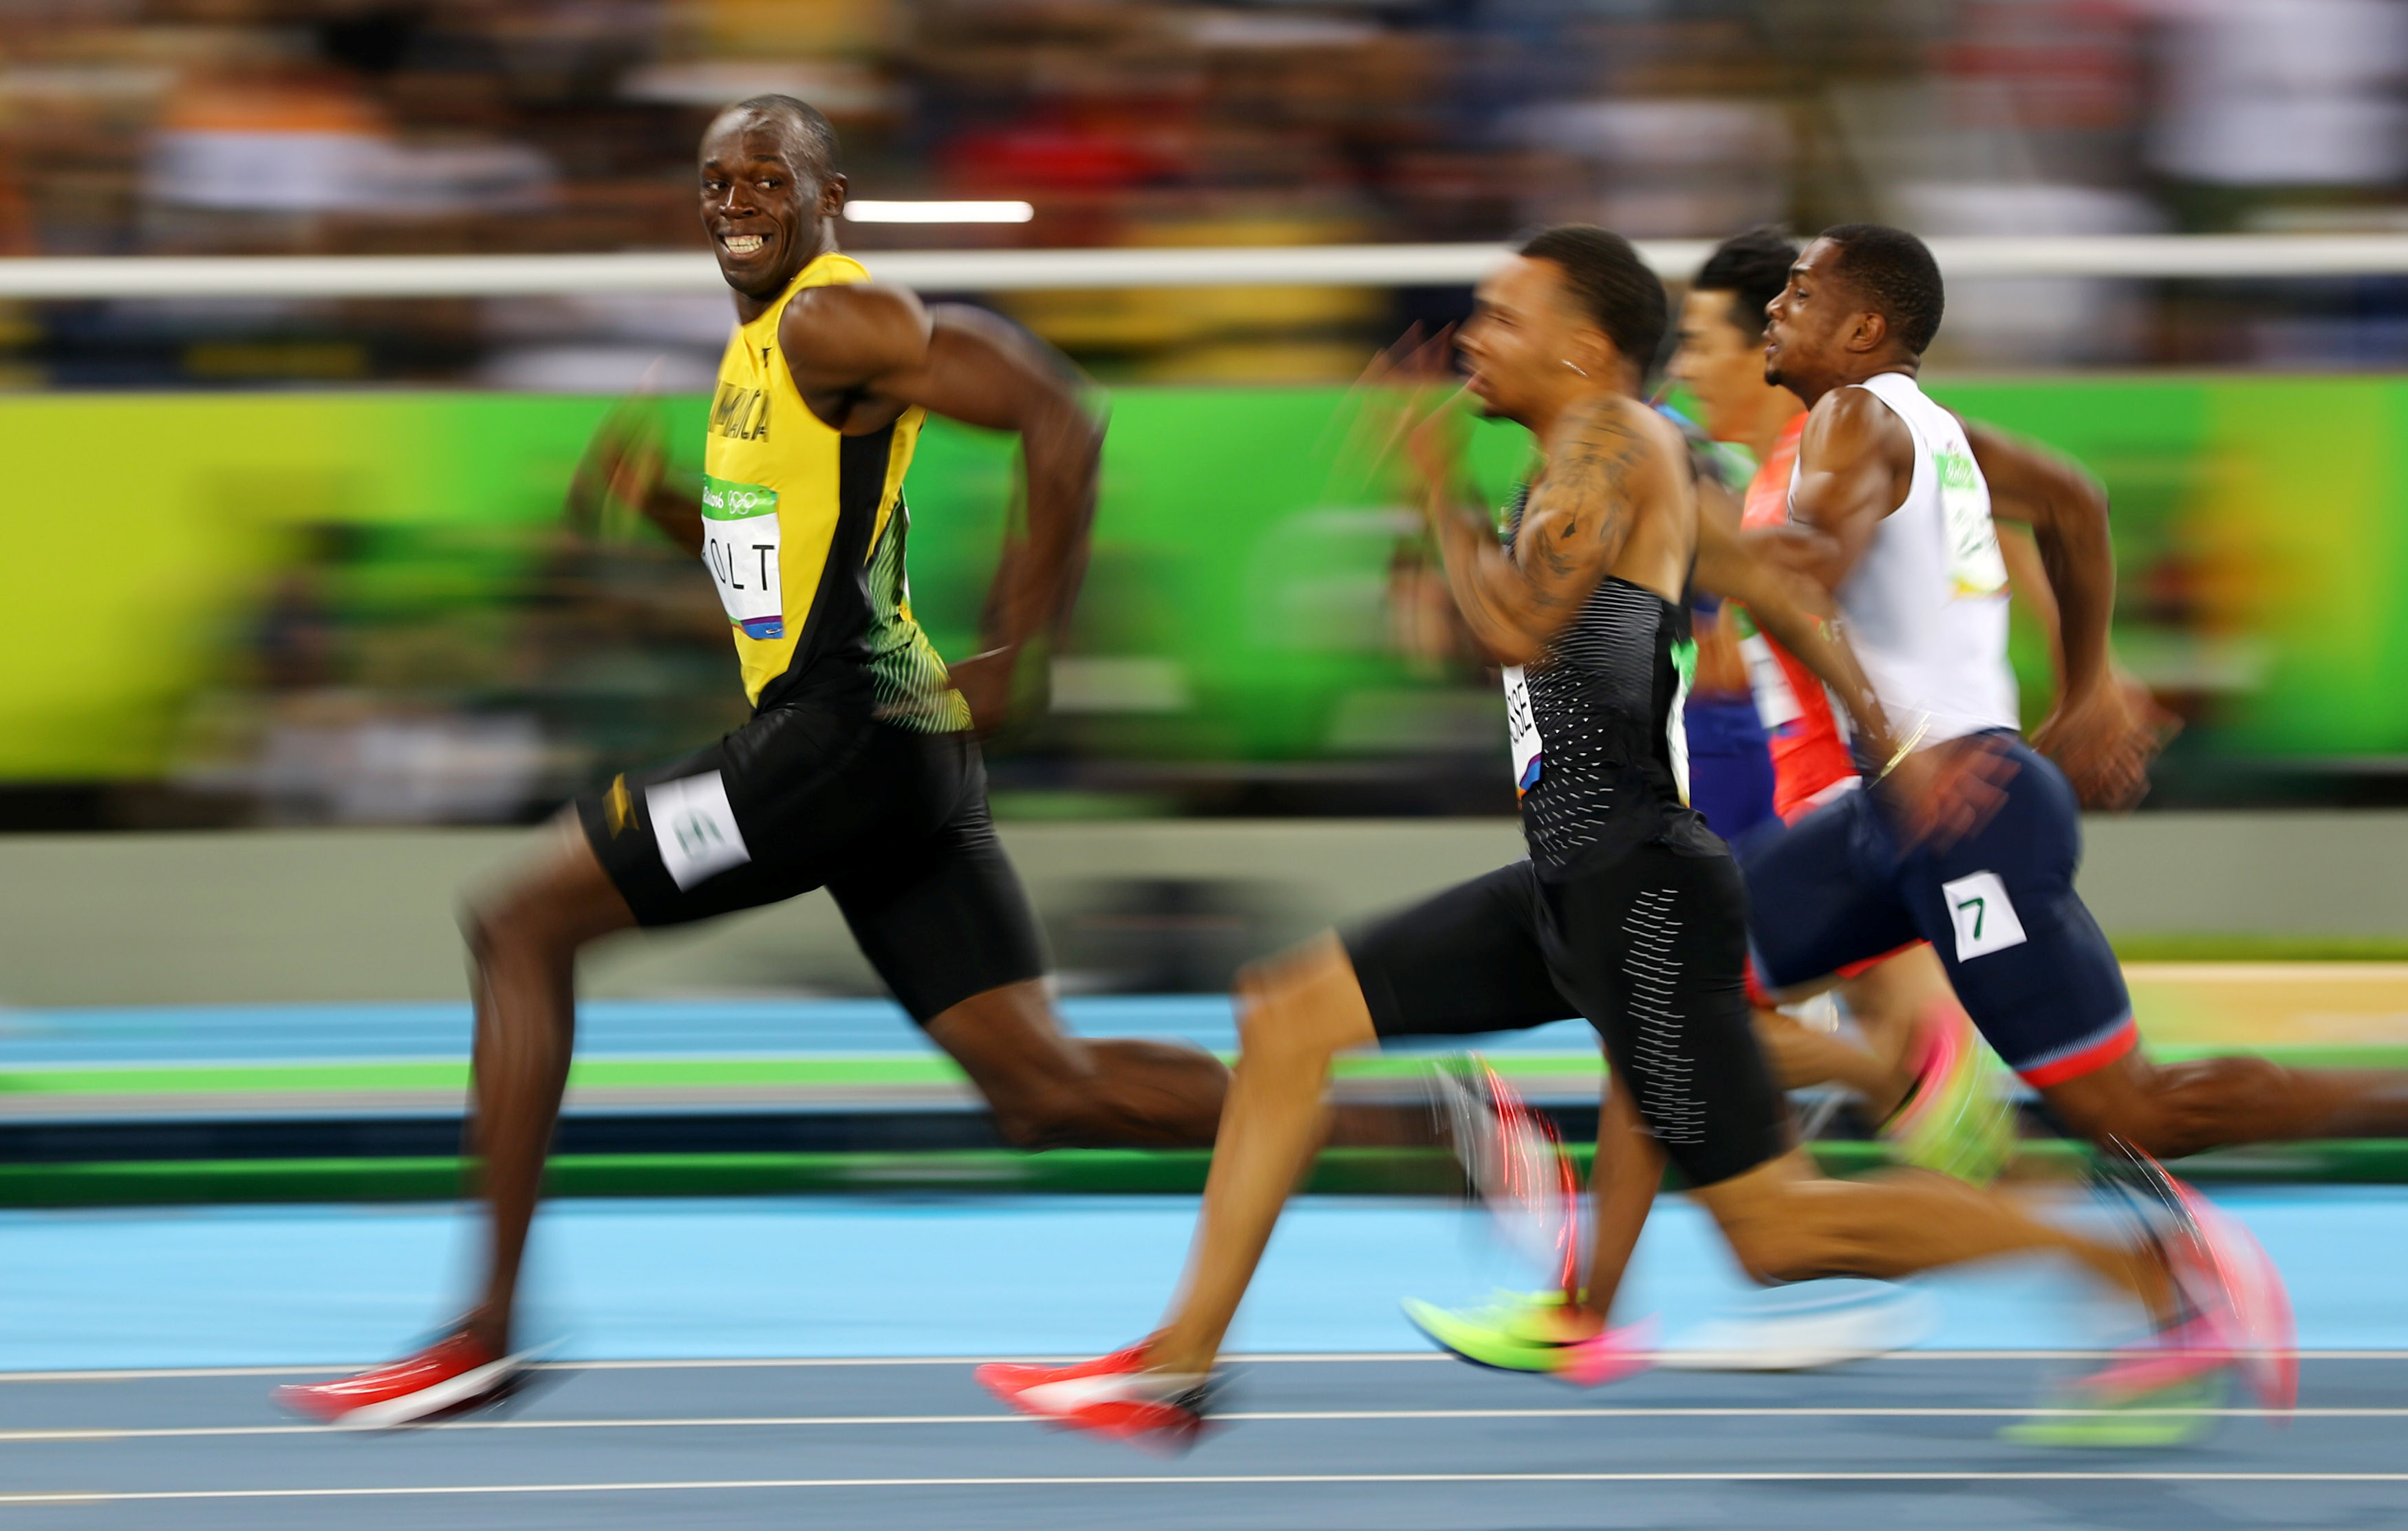 Usain Bolt (JAM) of Jamaica looks at Andre De Grasse (CAN) of Canada as they compete in the 2016 Rio Olympics, Men's 100m Semifinals at the Olympic Stadium in Rio de Janeiro, Brazil, August 14, 2016.  Picture taken August 14, 2016